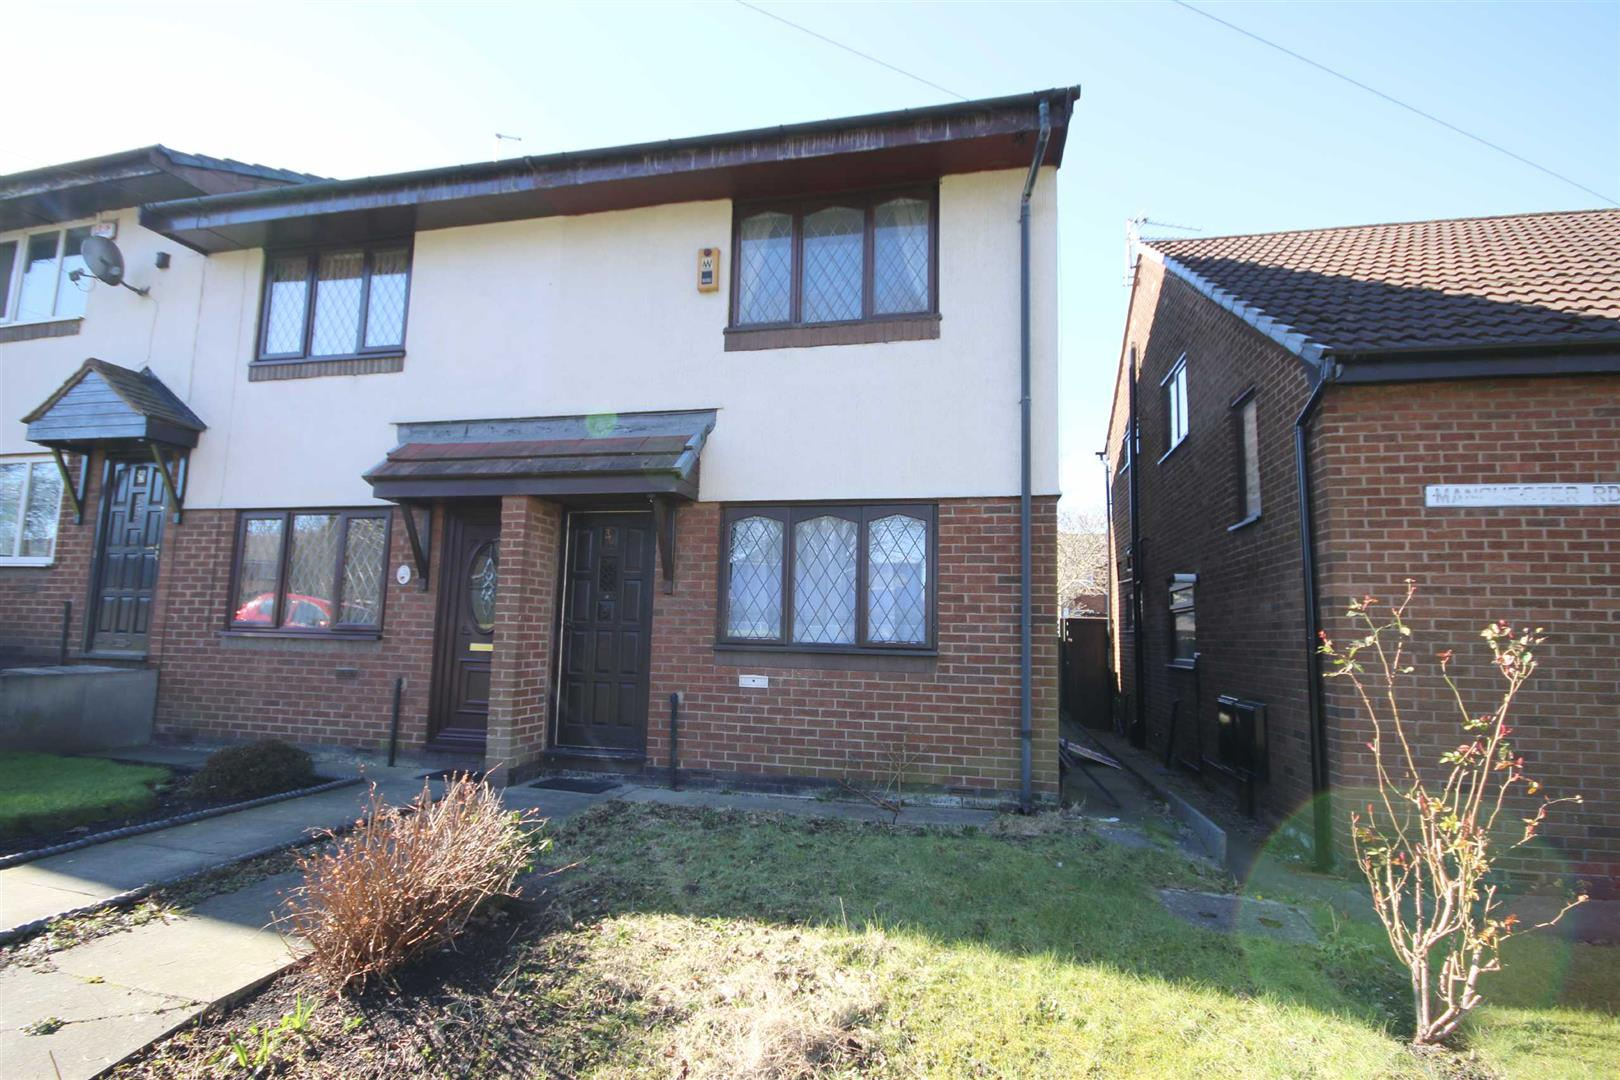 2 Bedroom House - End Terrace To Let